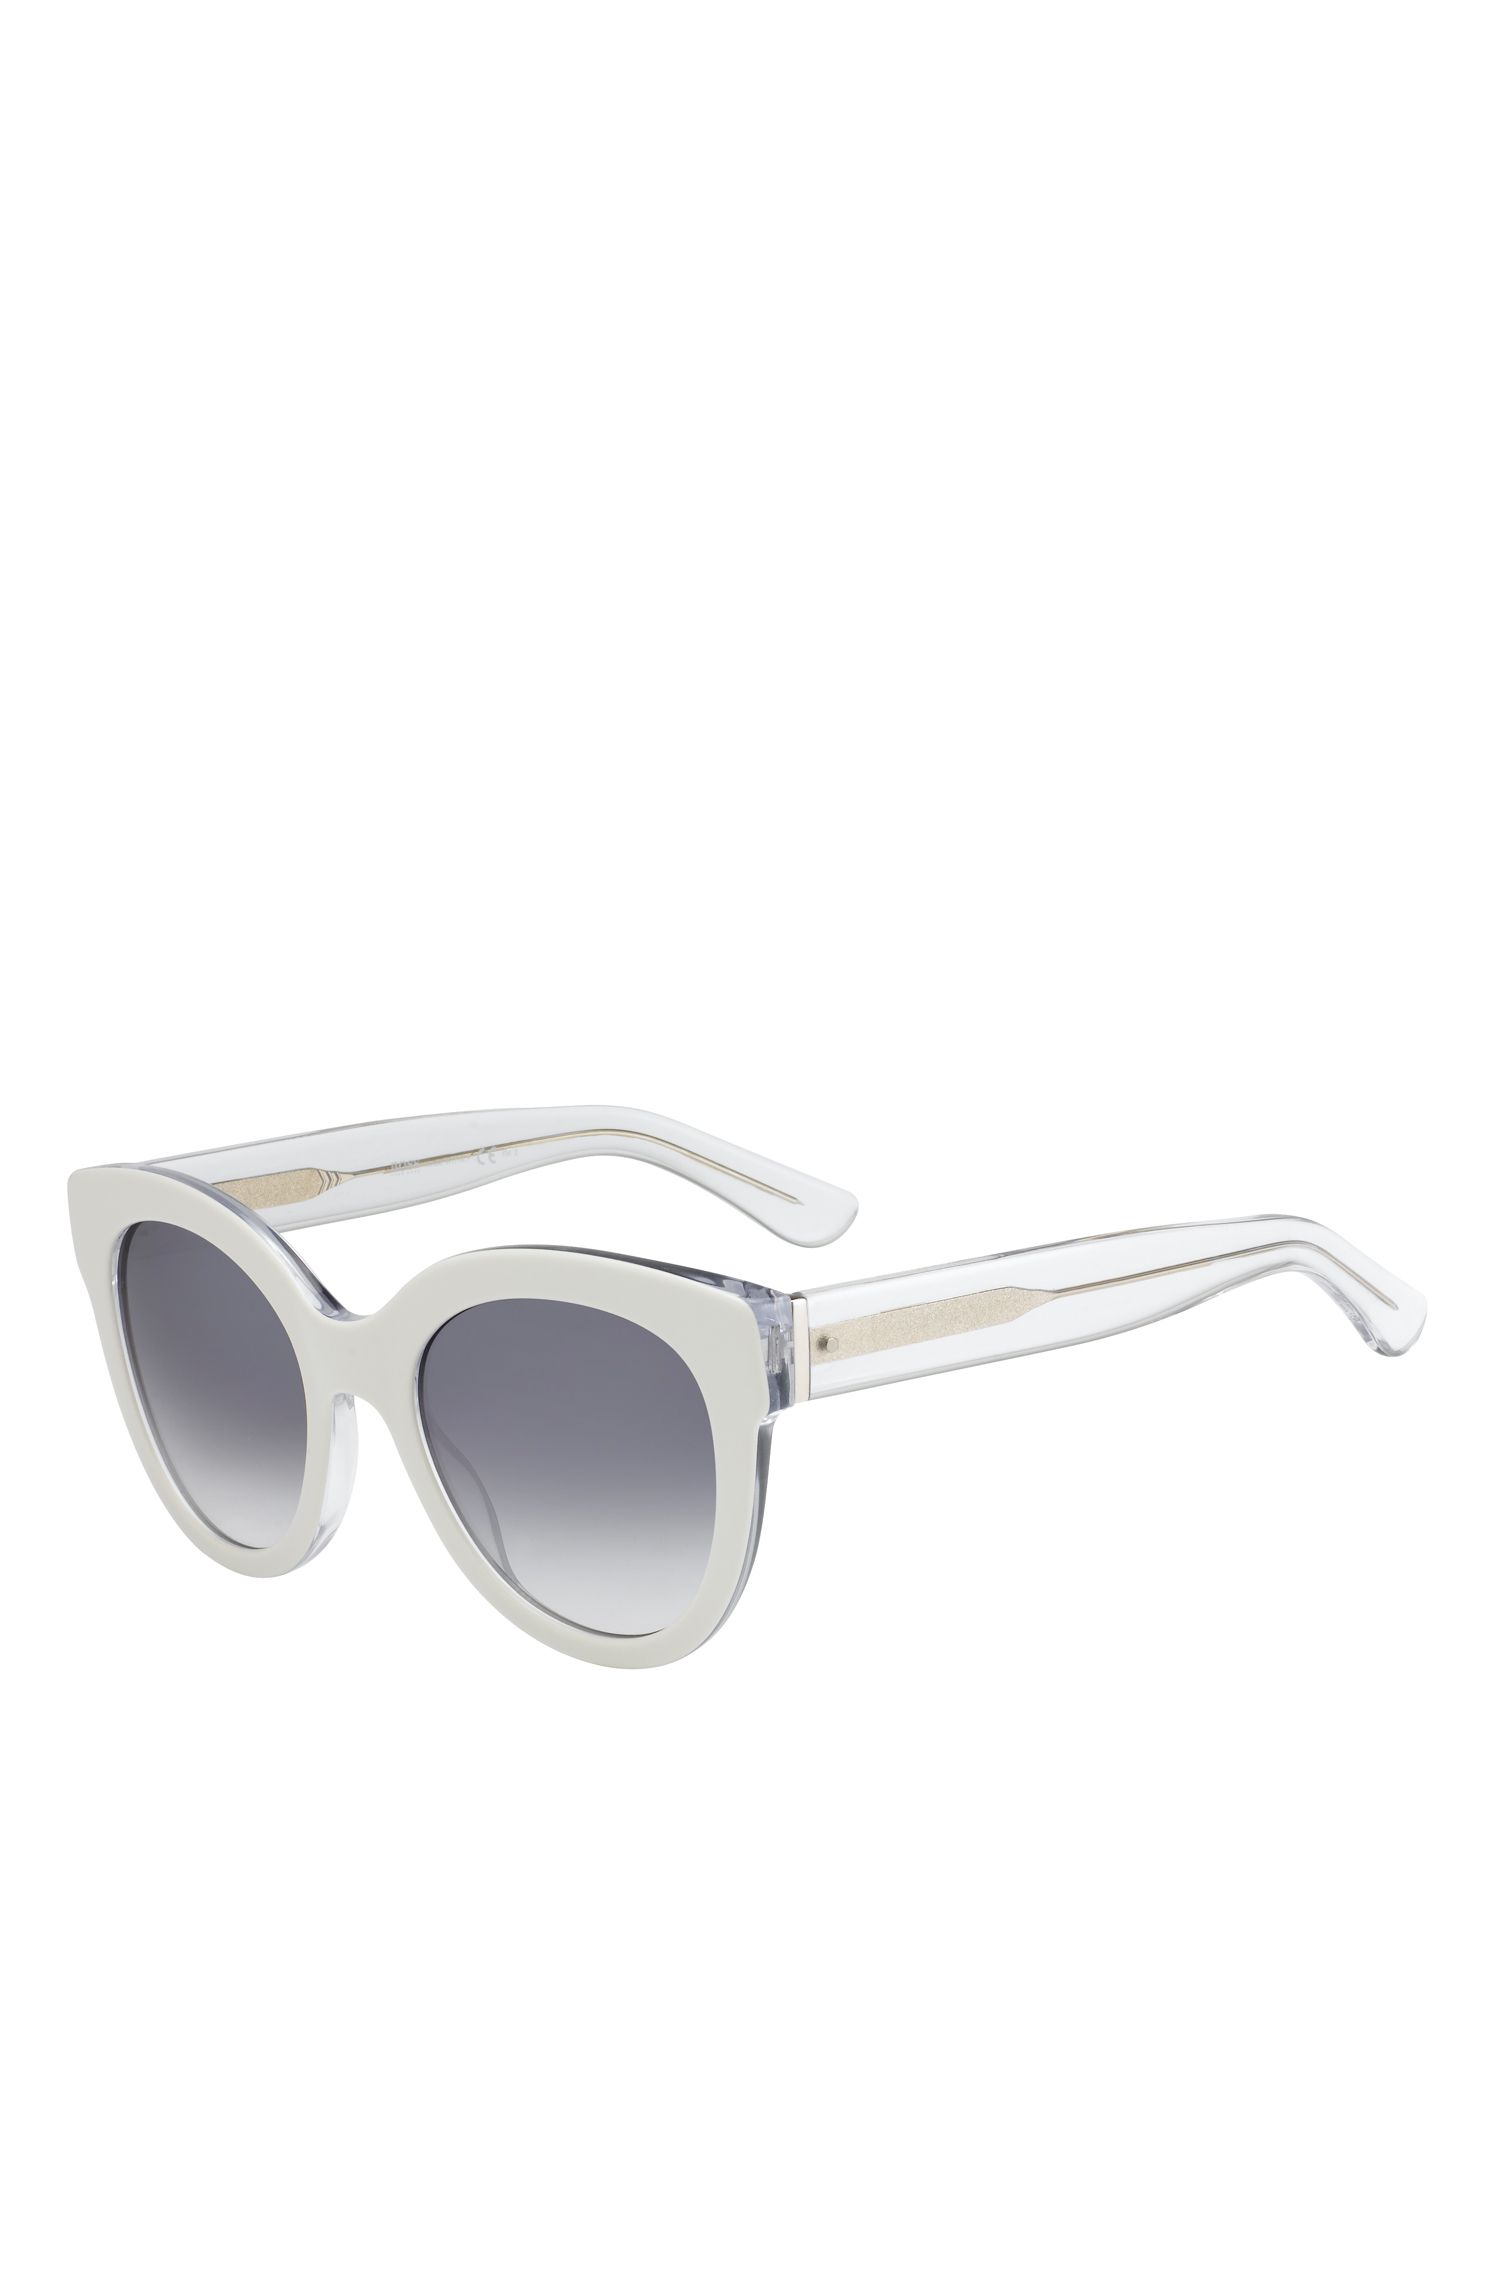 Cateye Gradient Lens Sunglasses | BOSS 067S